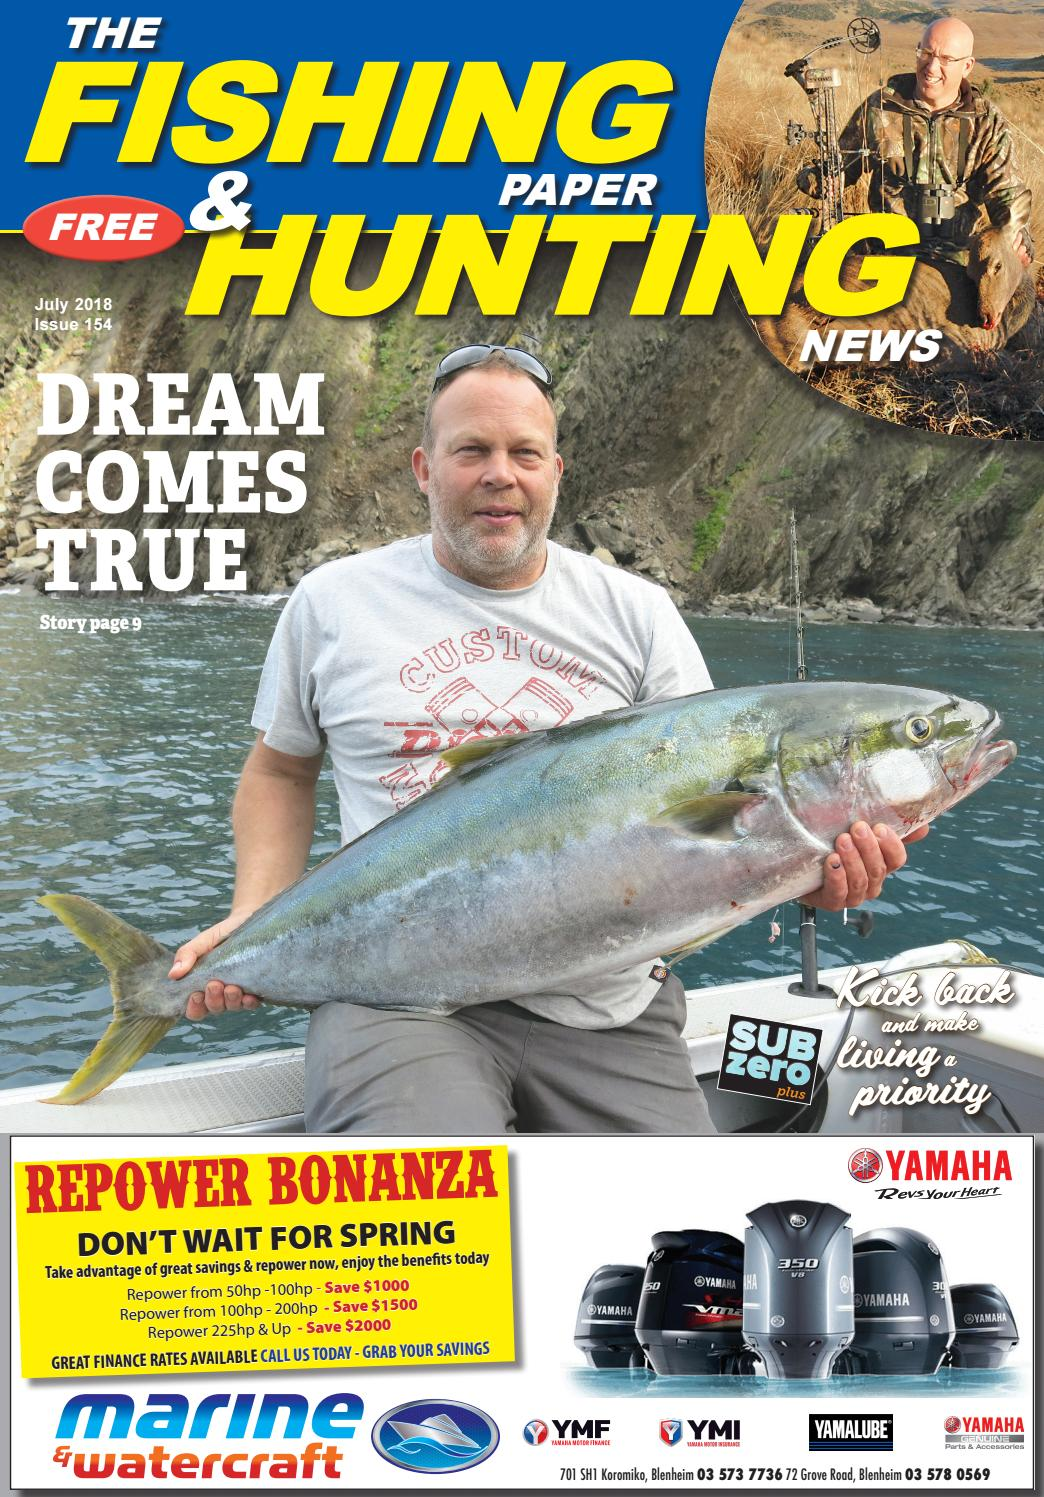 July 2018 Issue 154 The Fishing Paper & Hunting News by The